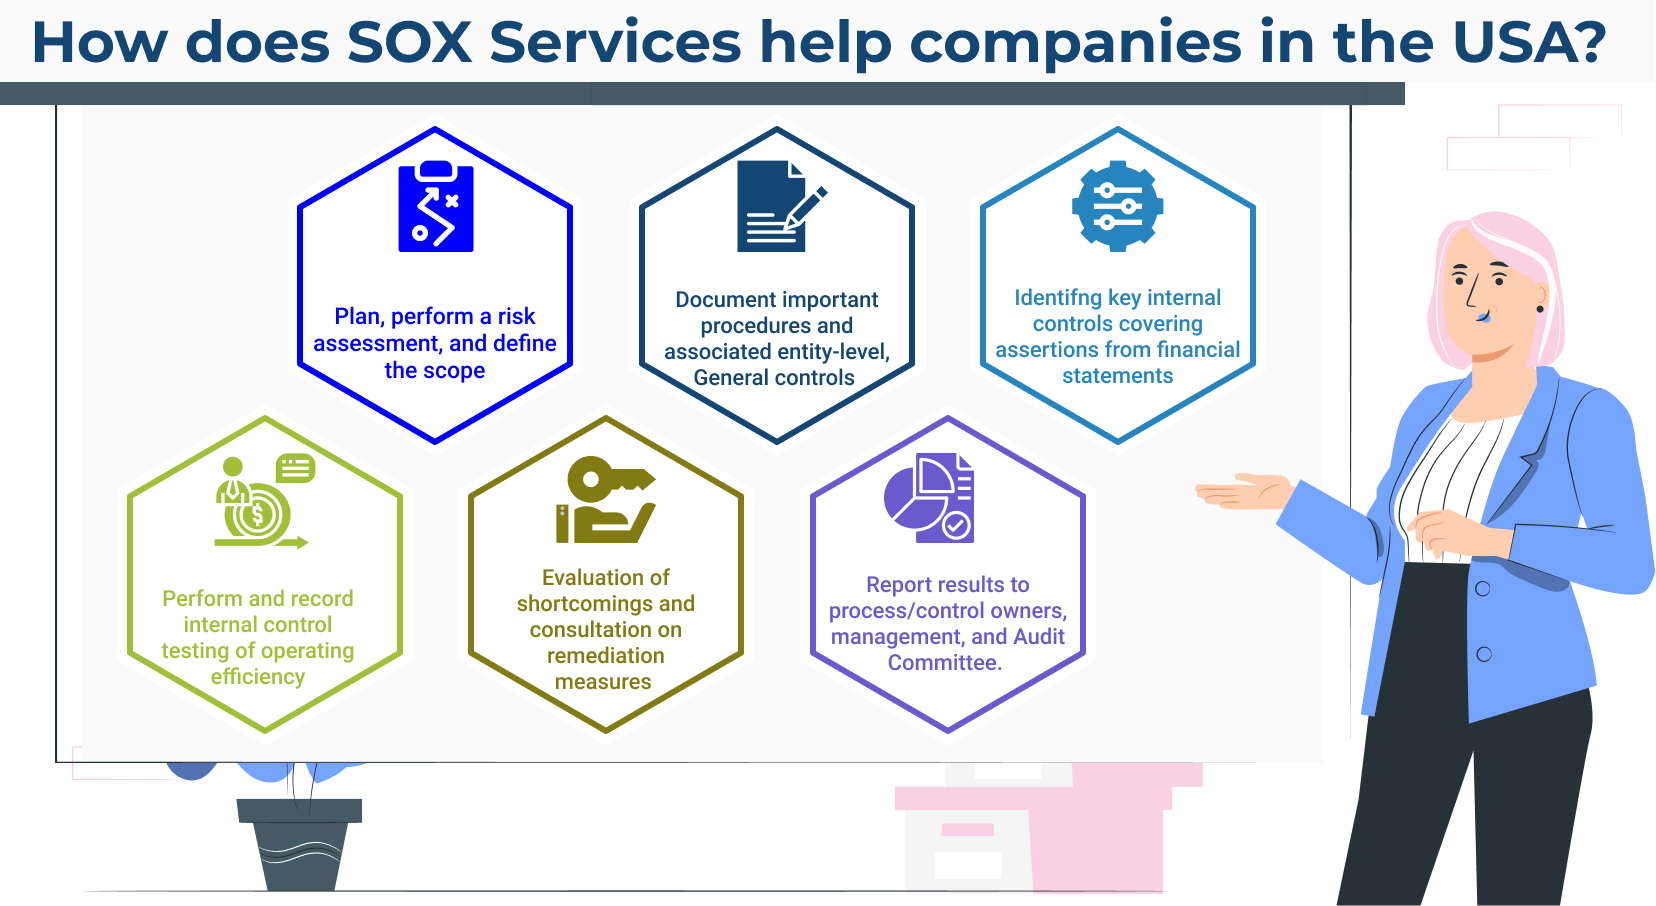 How does SOX Services help companies in the USA?